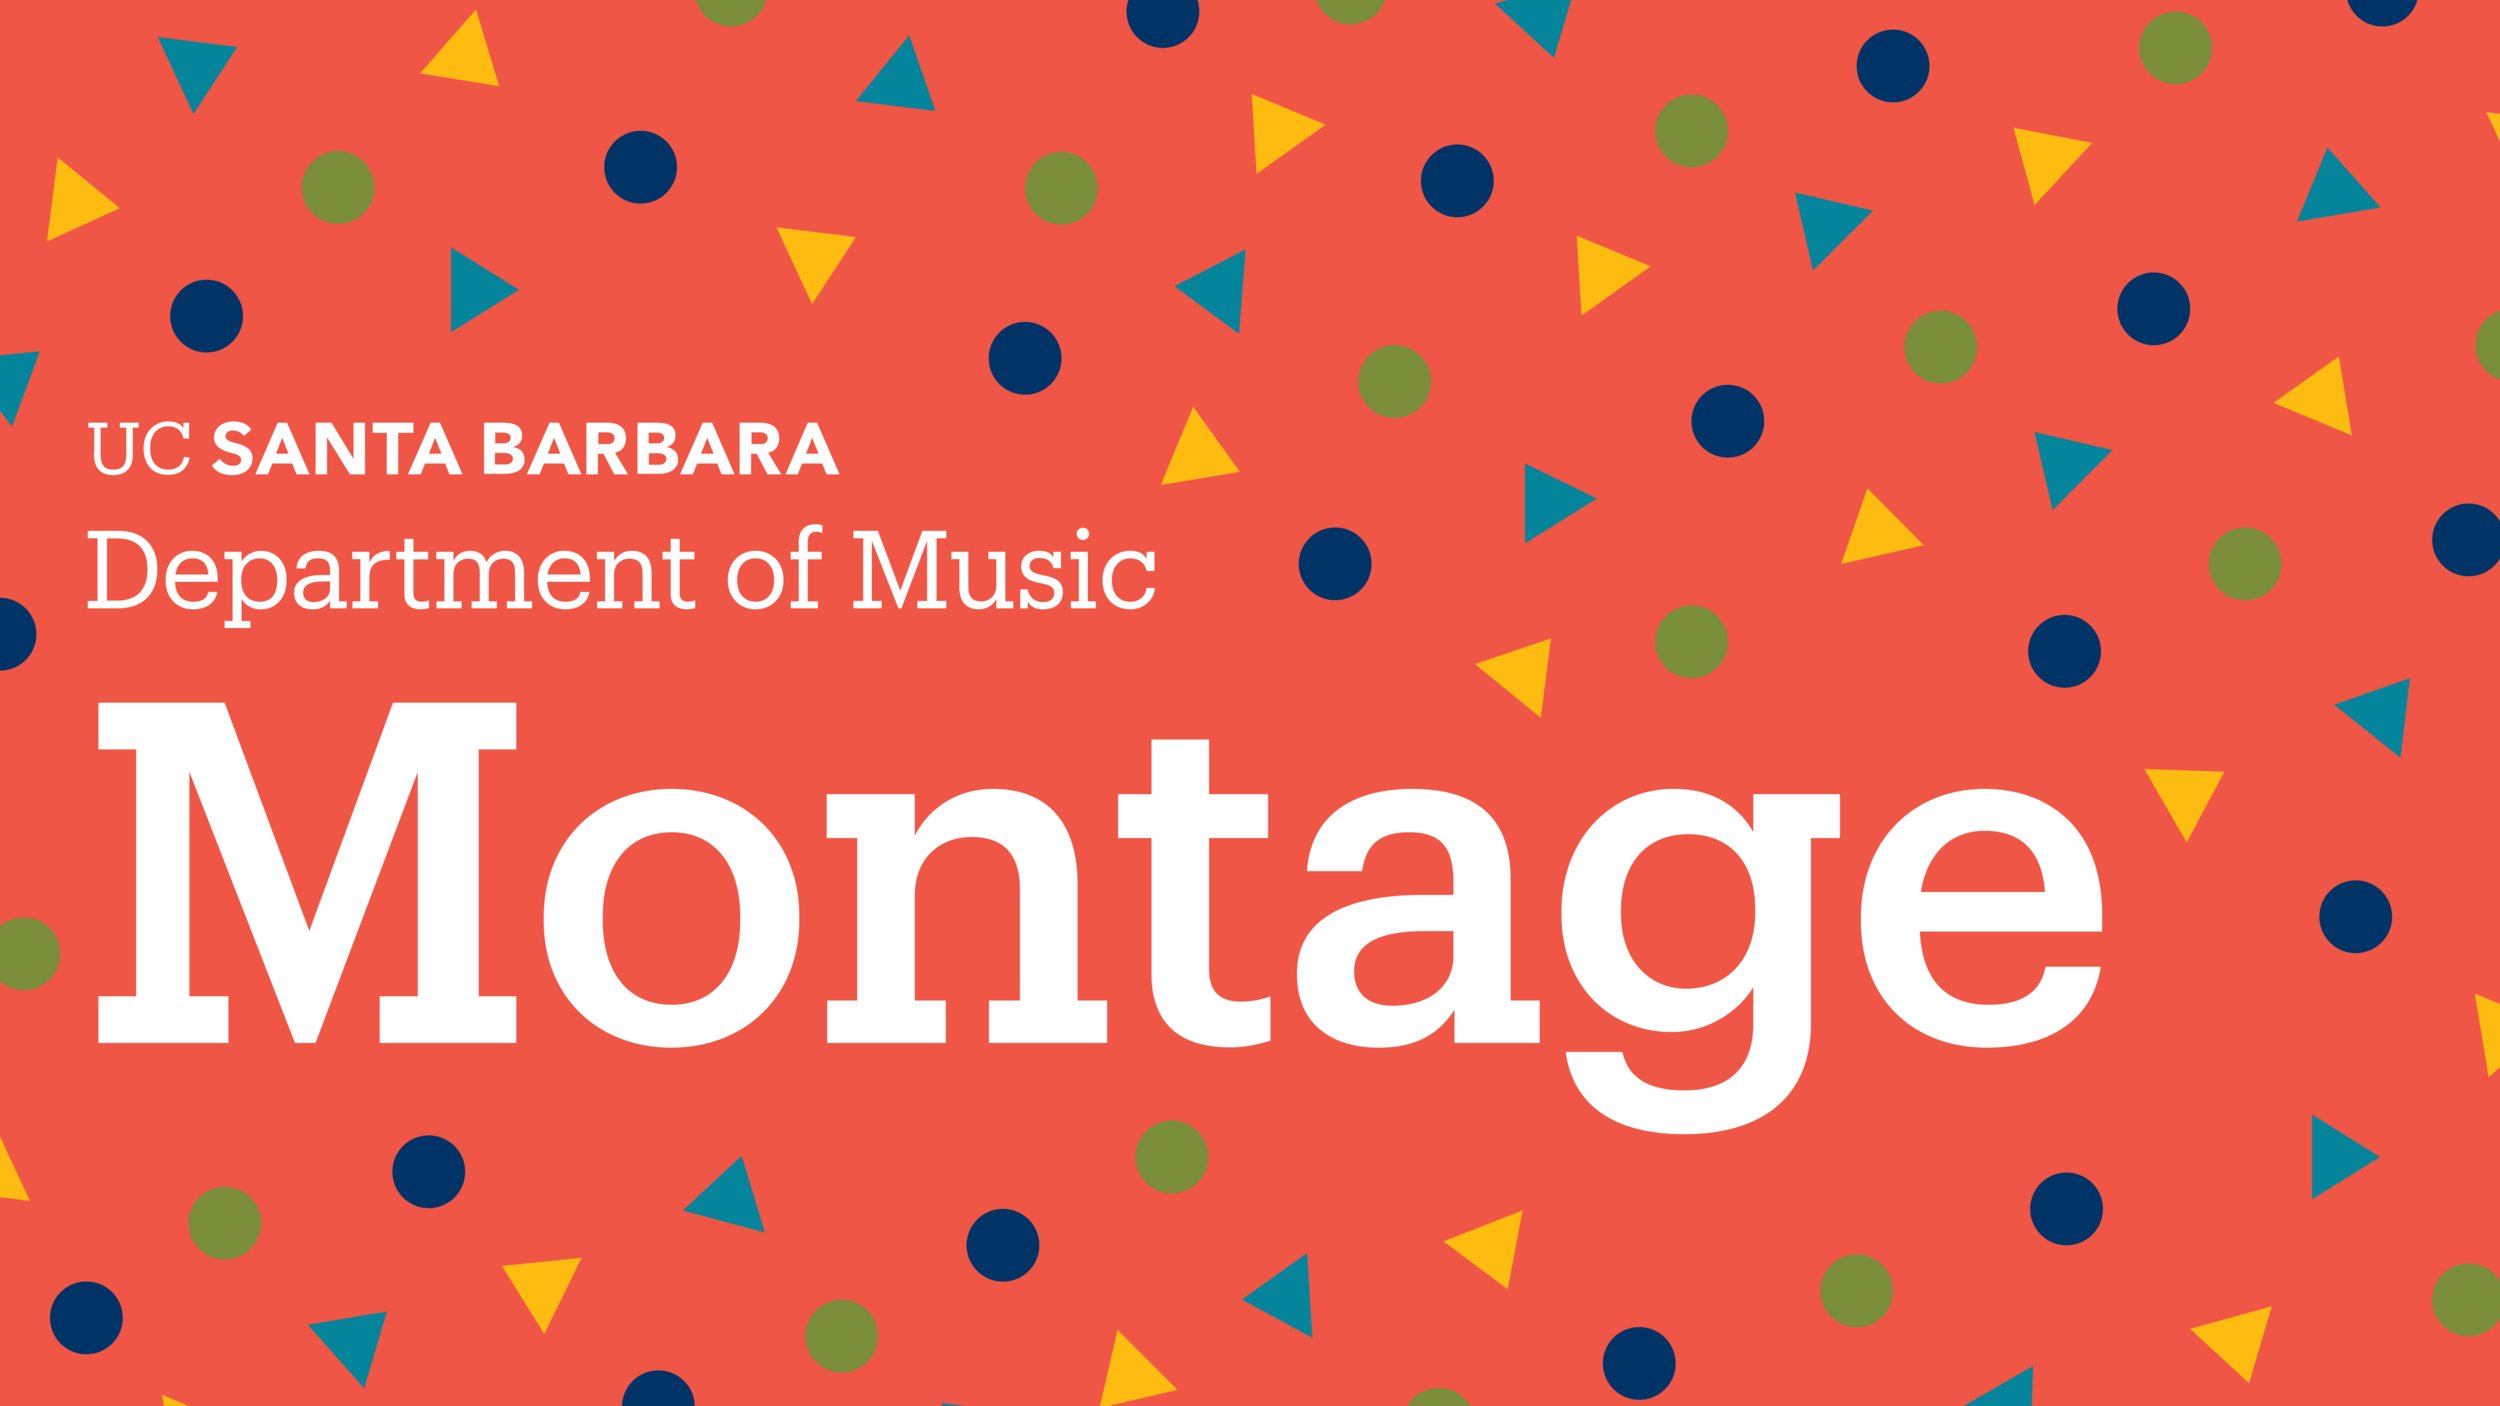 MONTAGE 2019 - Saturday, November 23, 20194:00 PMMarjorie Luke Theatre - Santa Barbara, CACo-presented by Community Arts Music Association with the UC Santa Barbara Department of Music.Free and open to the general public. No reservations required. For more information visit music.ucsb.edu or call (805) 893-3230.